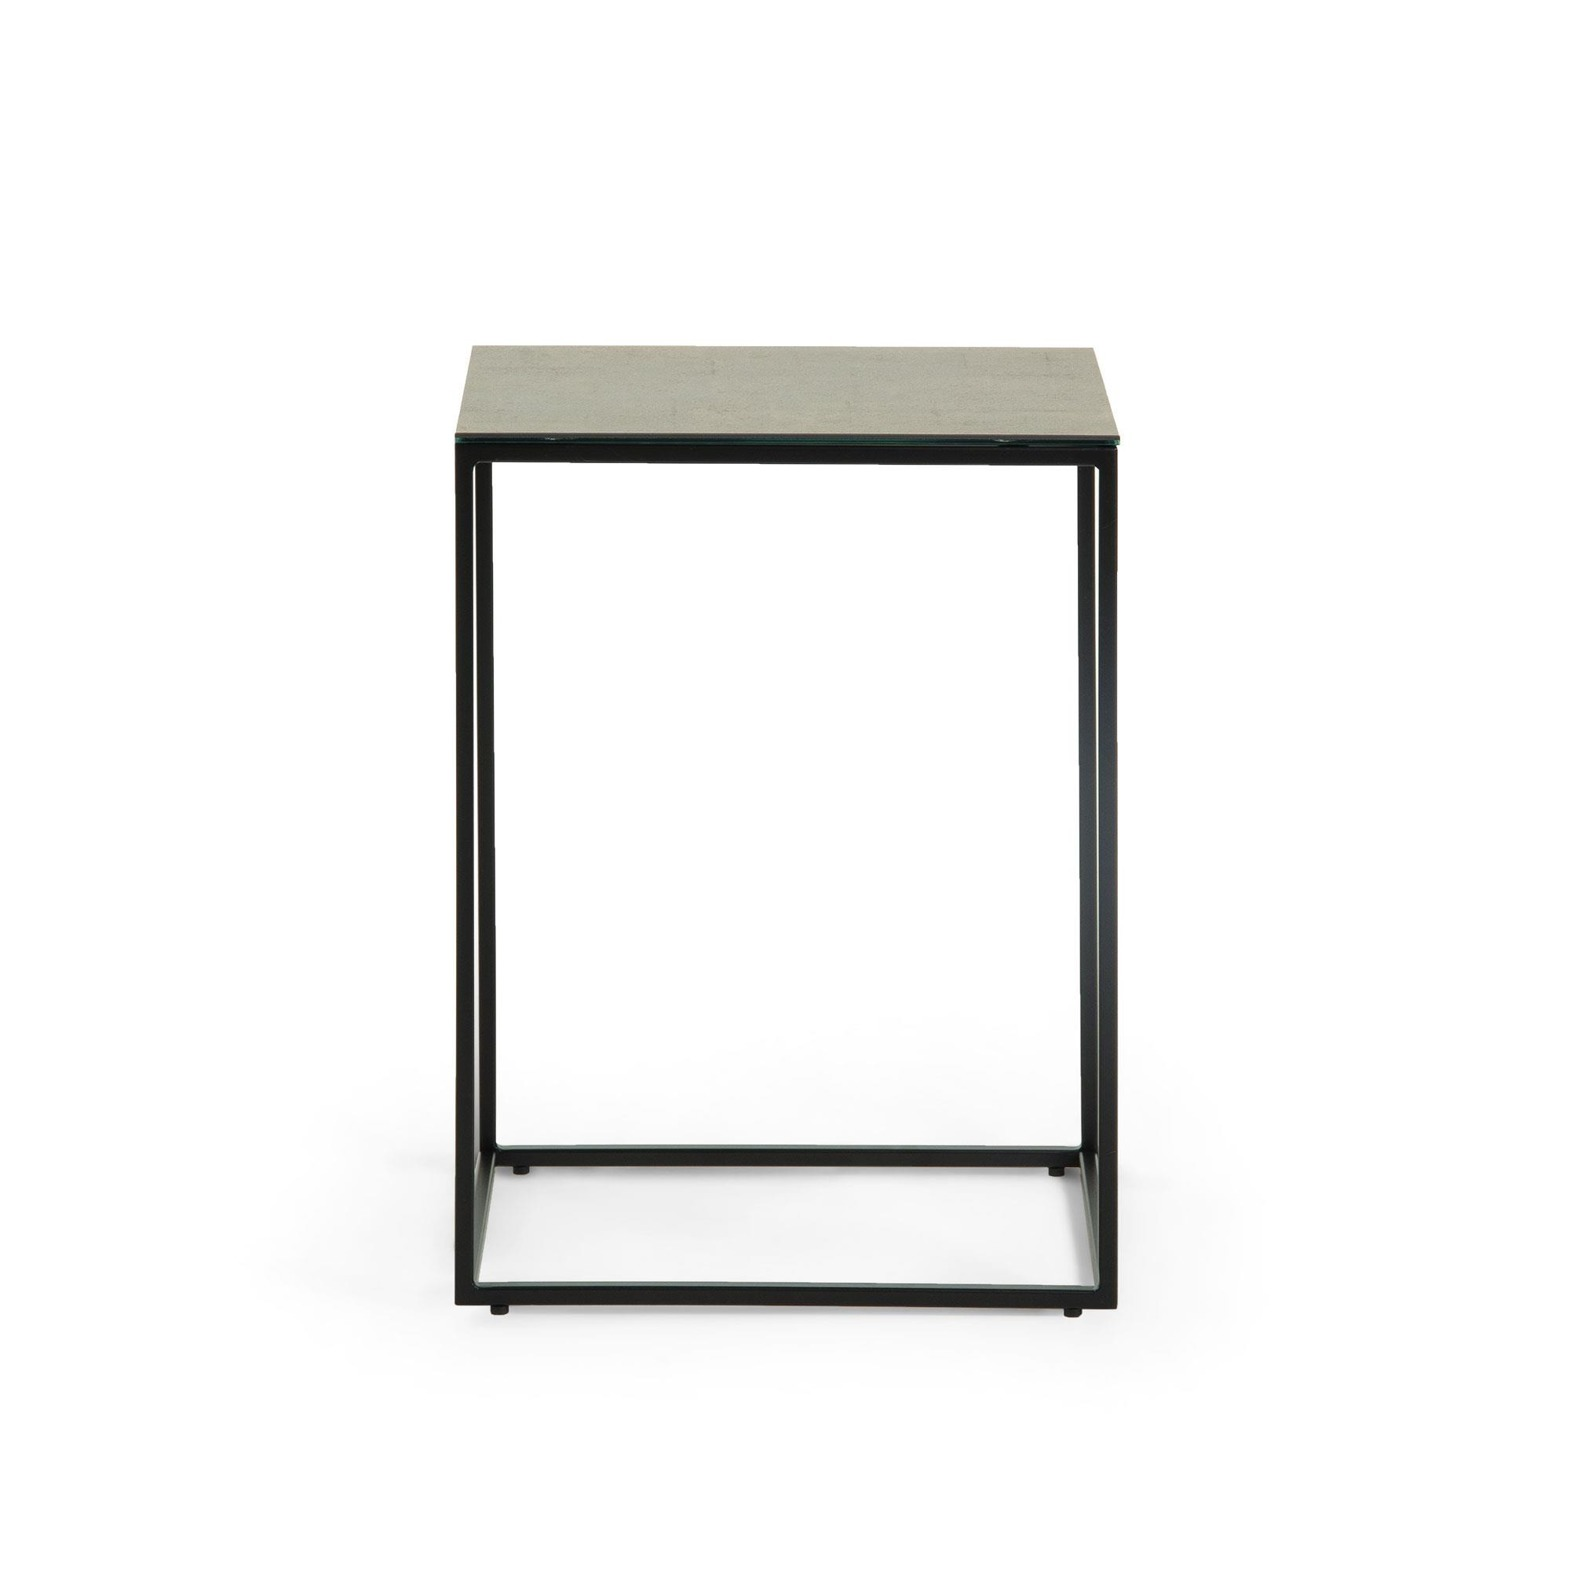 RAWENNA Side table black porcelain Iron Moss